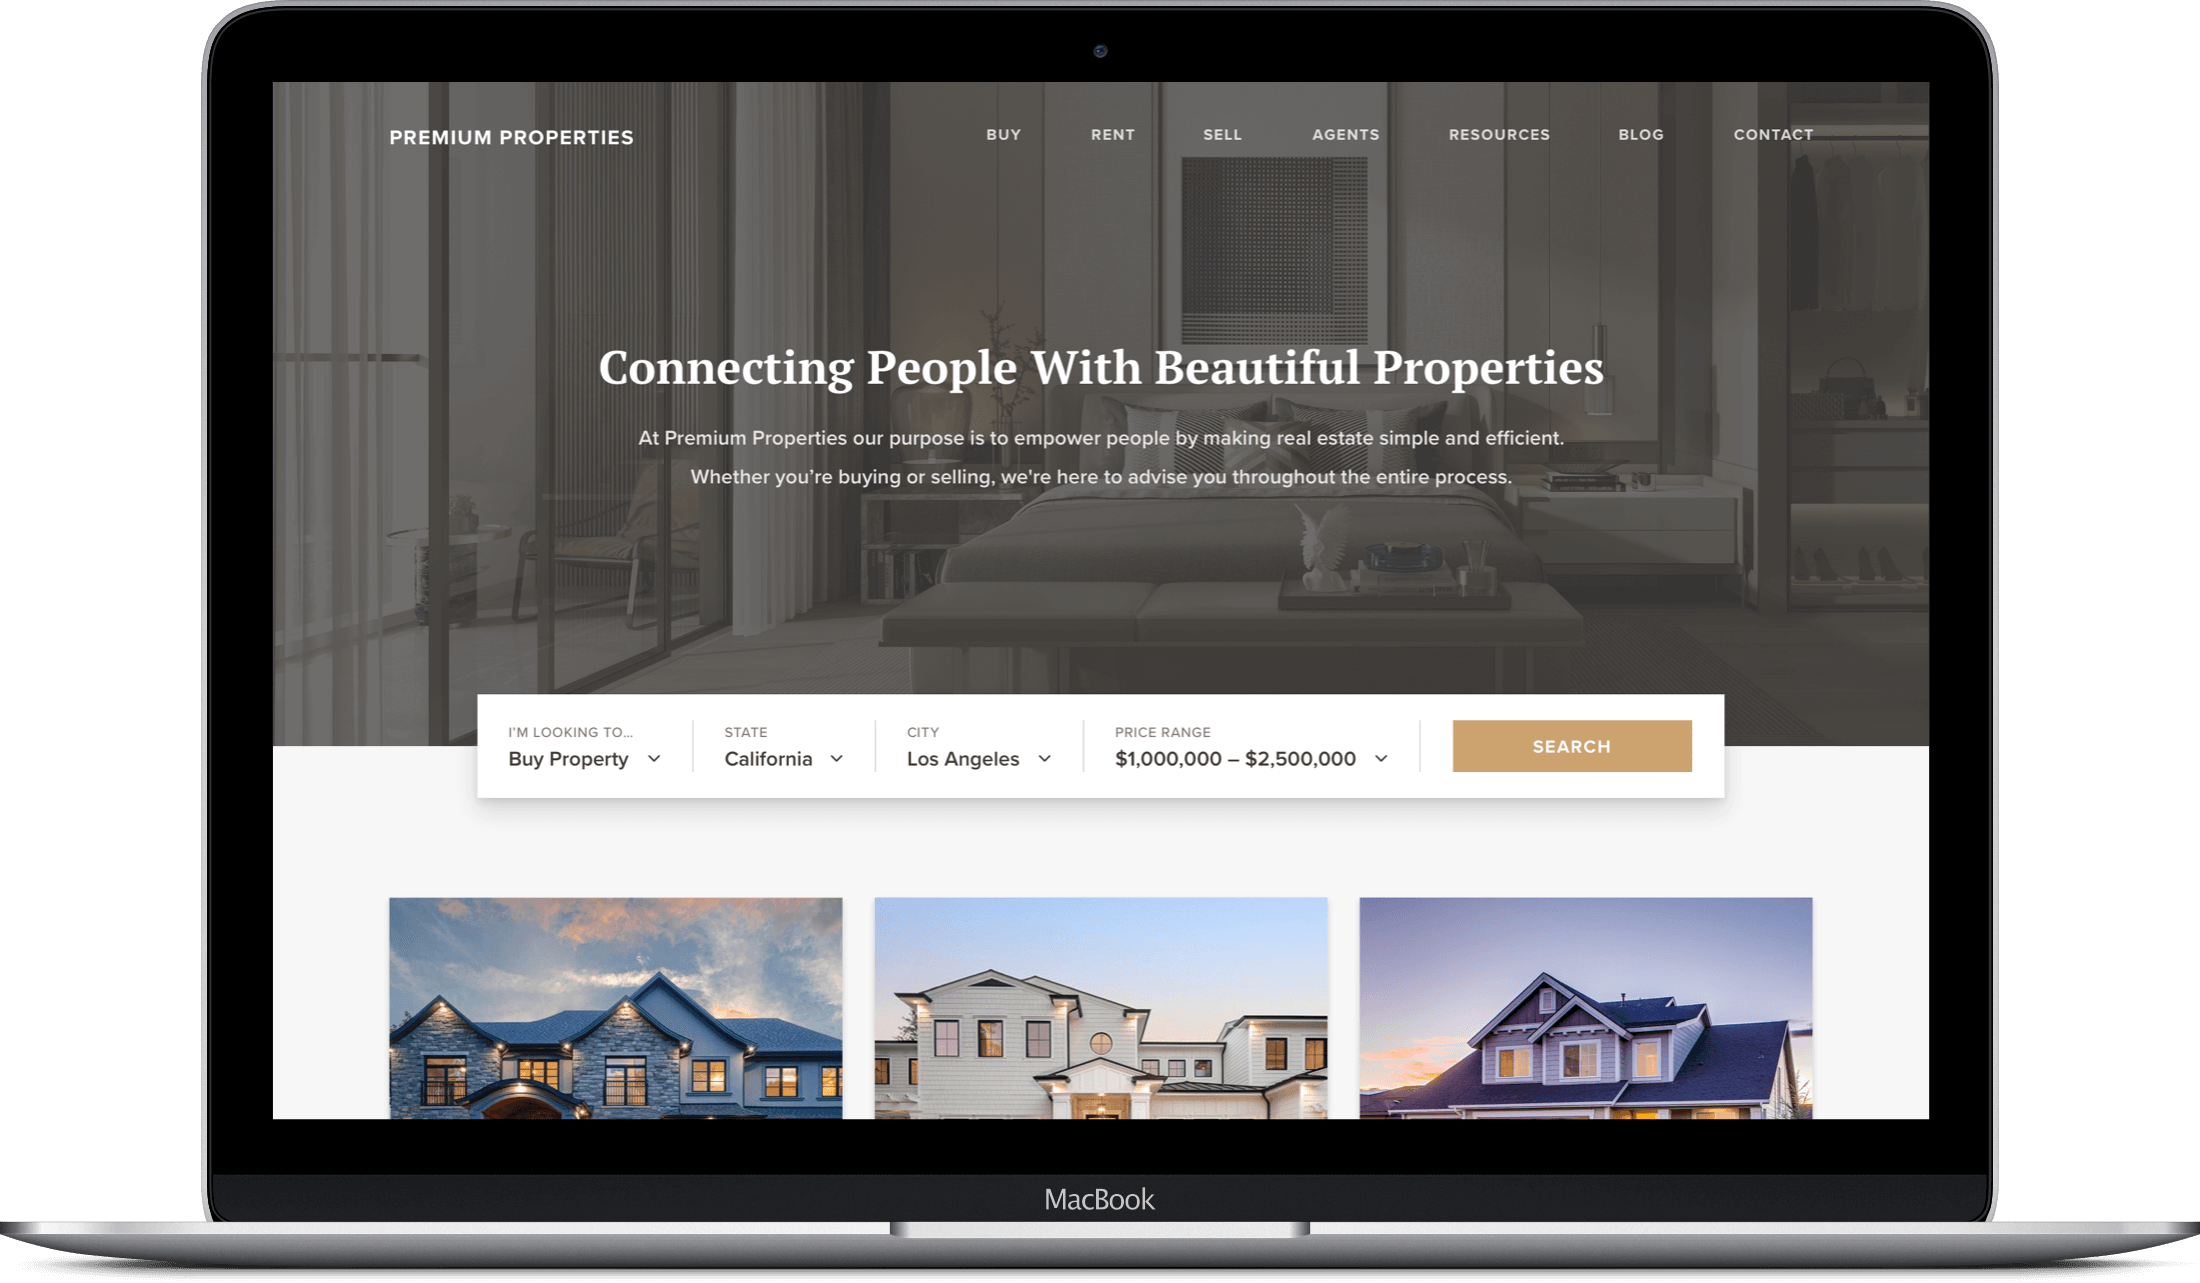 Premium Properties website on a MacBook screen